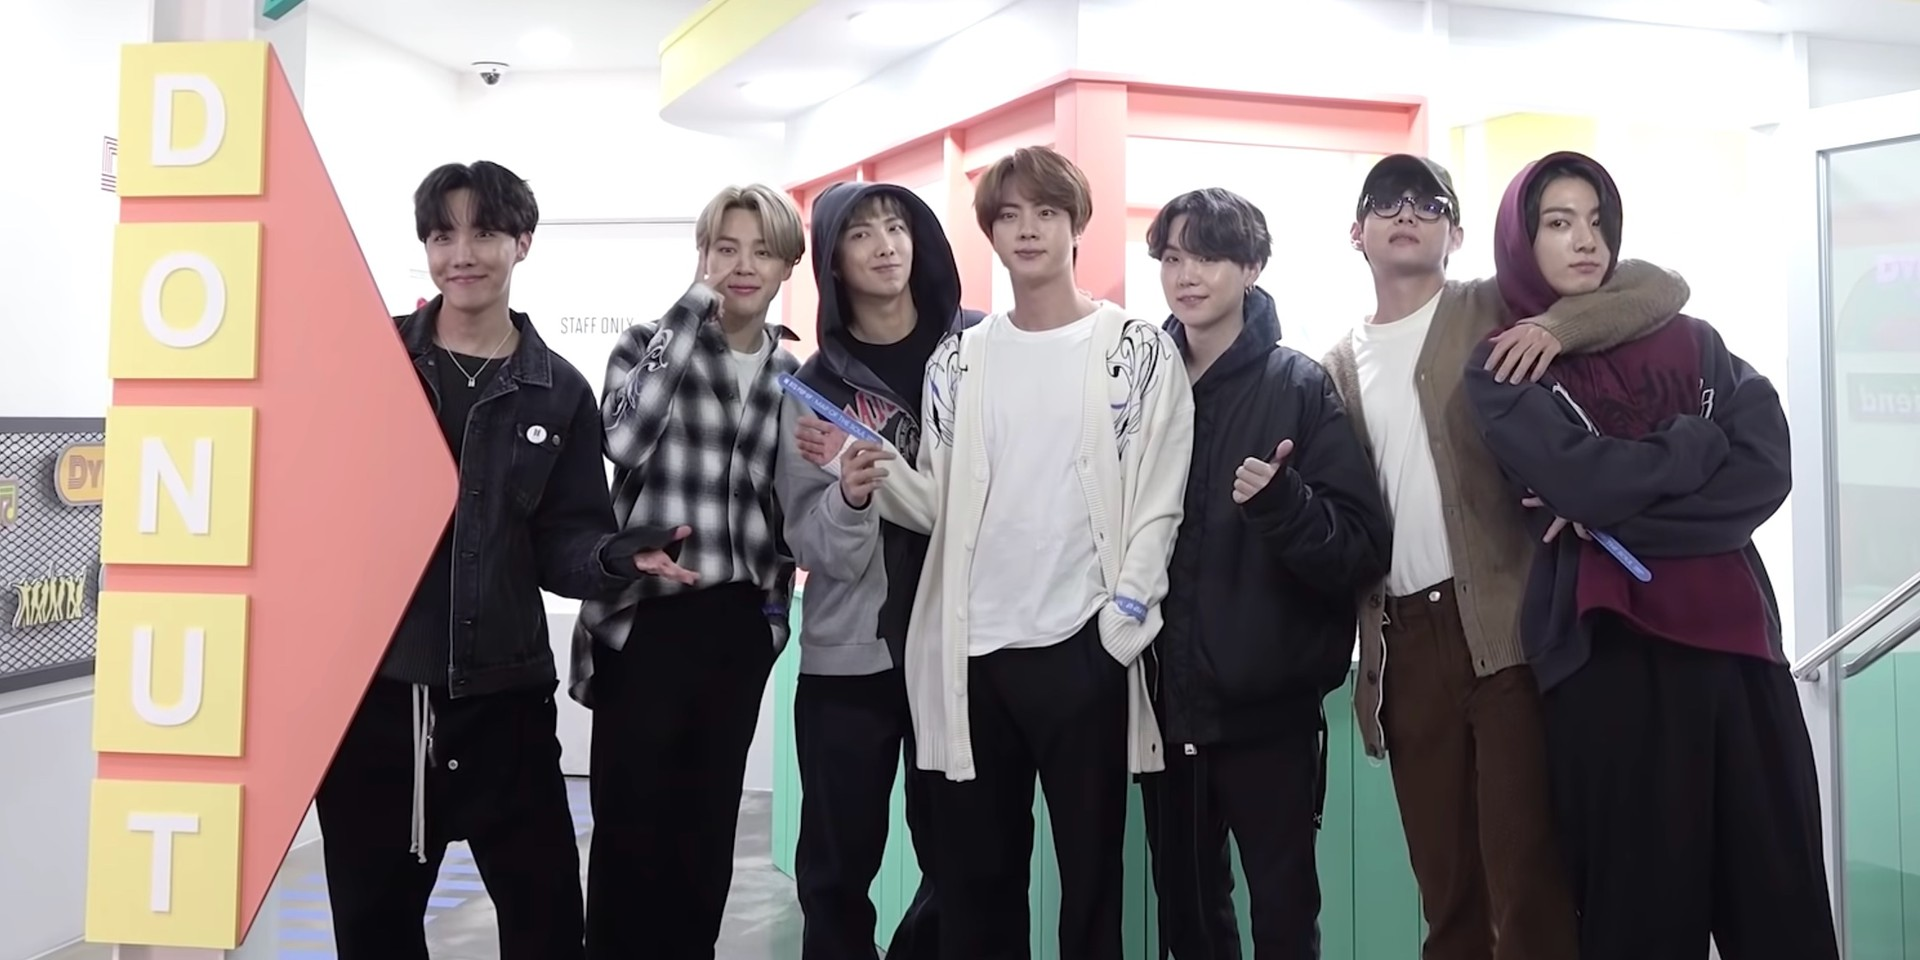 BTS POP-UP return to Asia with stores in Manila, Bangkok, Taipei, and Singapore